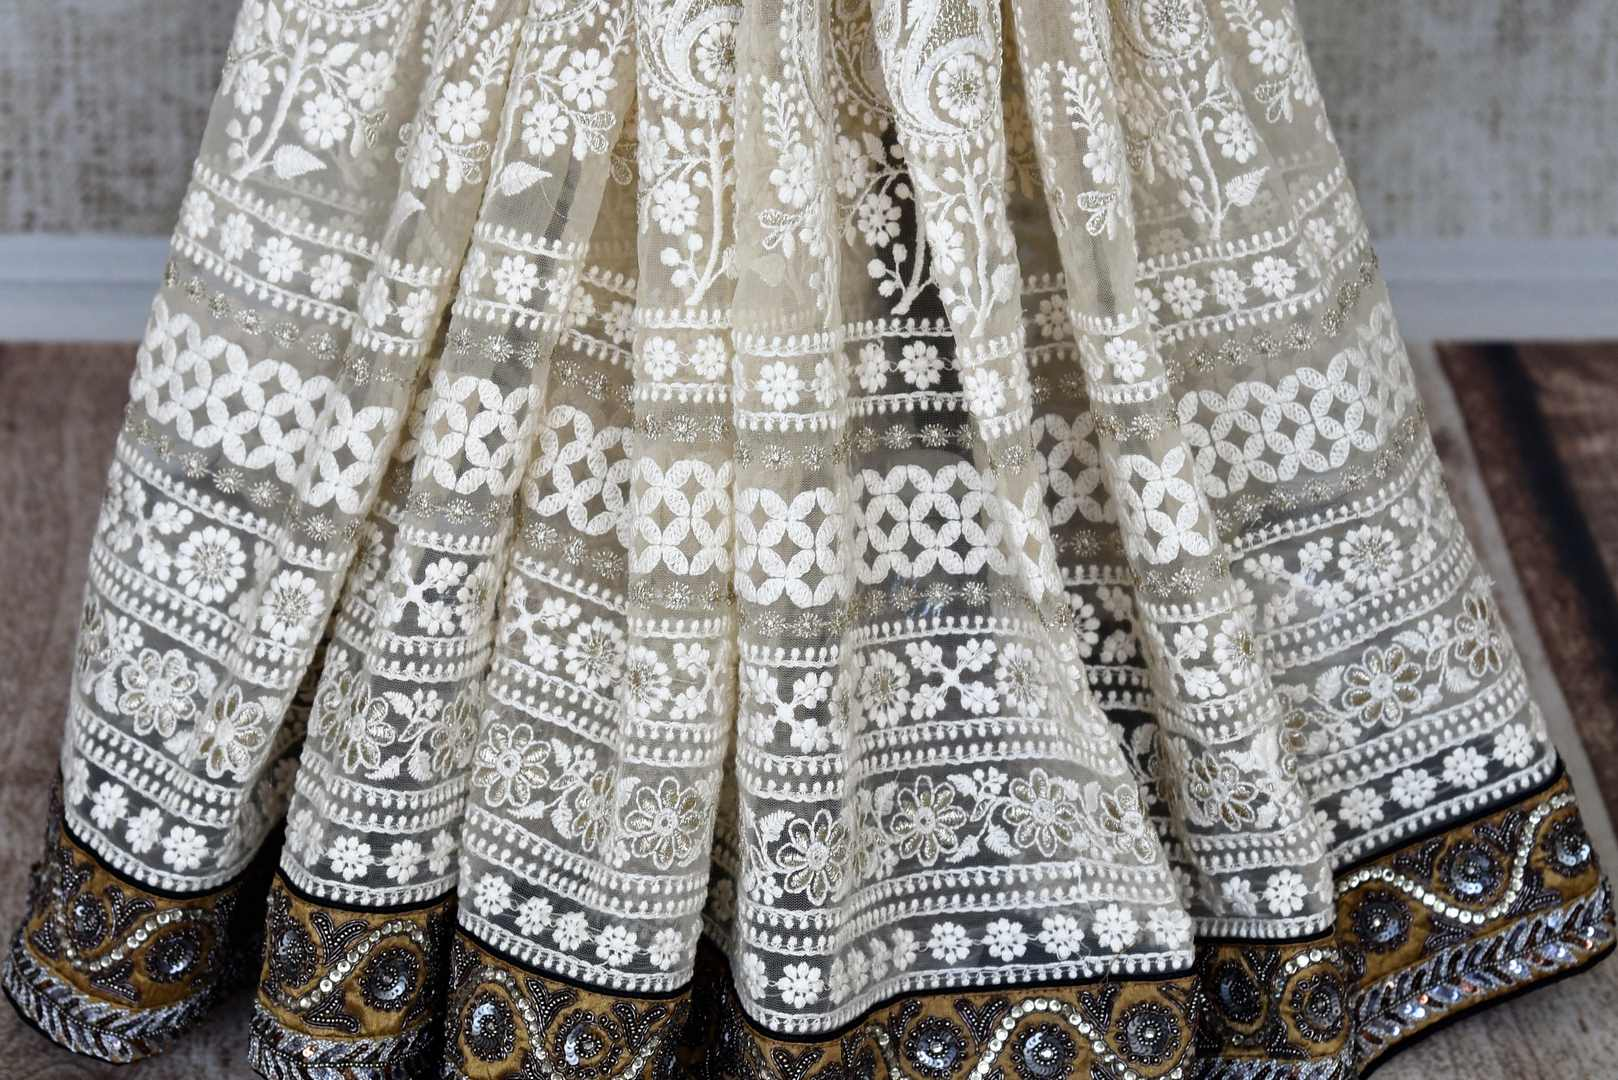 Shop off-white and black half n half embroidered net sari online in USA from Pure Elegance. Make your ethnic style perfect with a range of exquisite Indian designer saris, embroidered sarees, handloom saris available at our exclusive Indian fashion store in USA and also on our online store. Shop now.-pleats